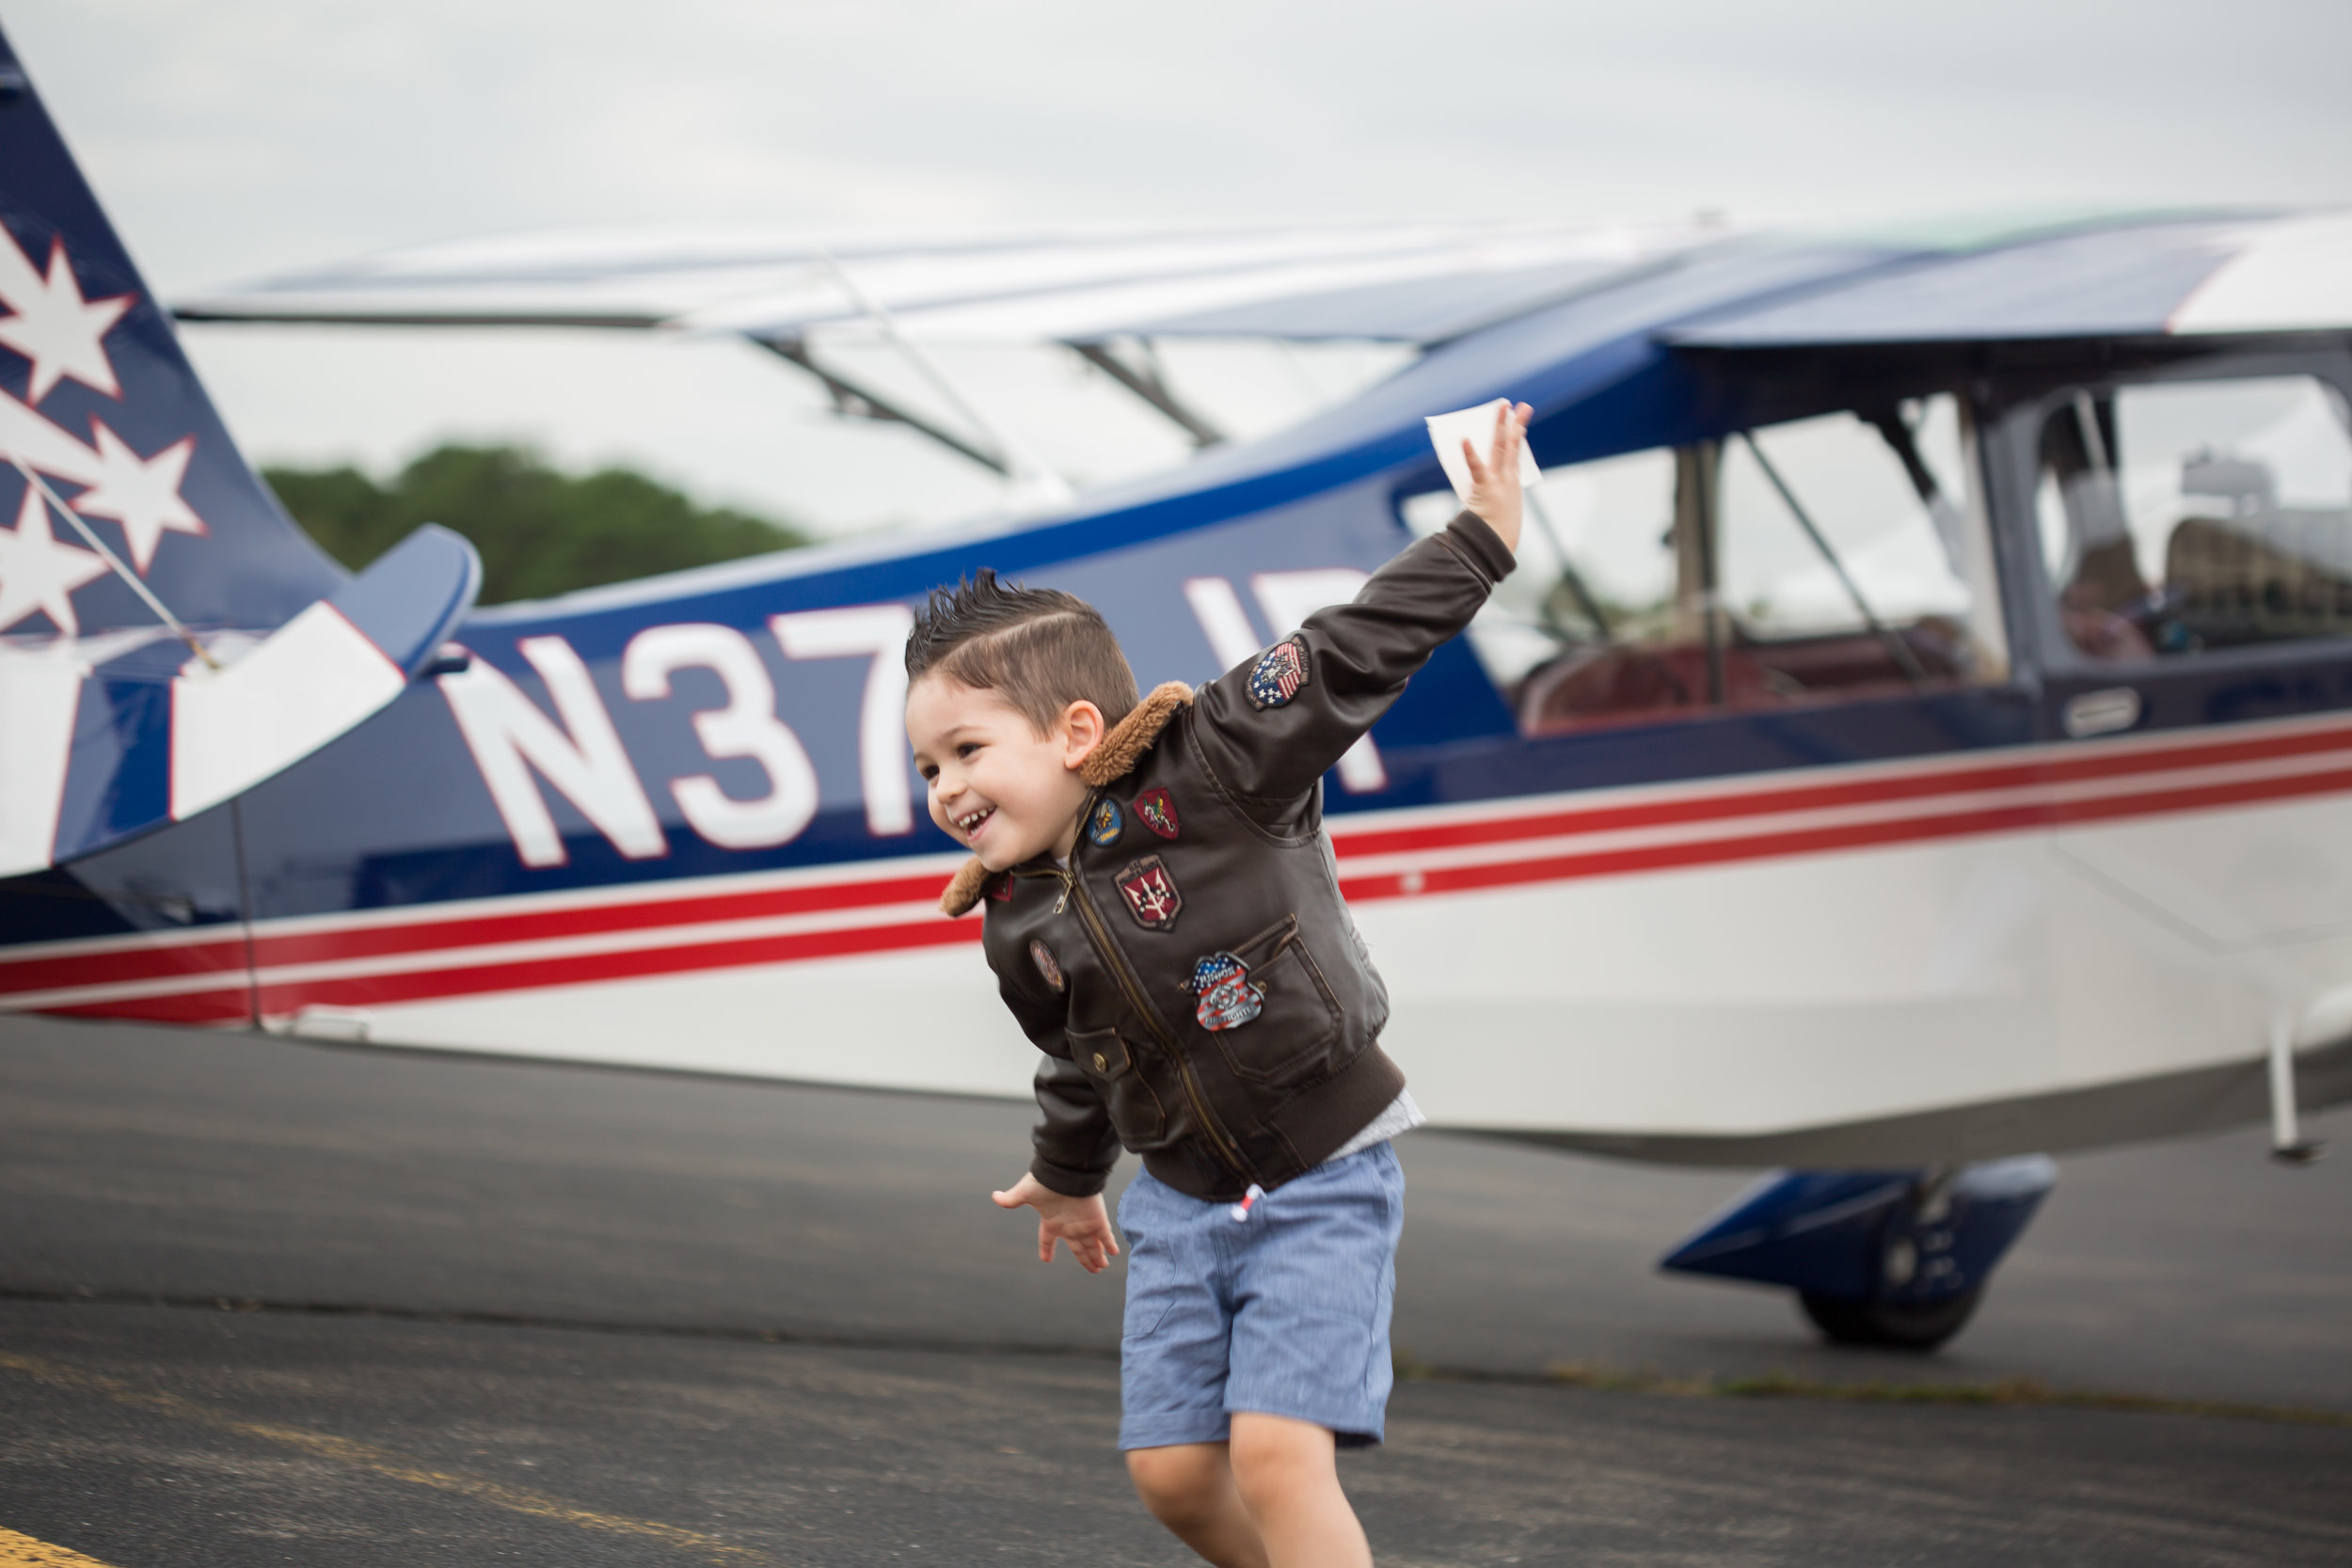 We are partnering with Sound Aircraft Services and the East Hampton Airport to provide everyone in our community the exciting opportunity to experience vintage and modern aircraft up close and personal. Just Plane Fun Day will be a family-friendly, fun filled adventure that will bring the entire community together in a way that educates, inspires and motivates people of all ages. -